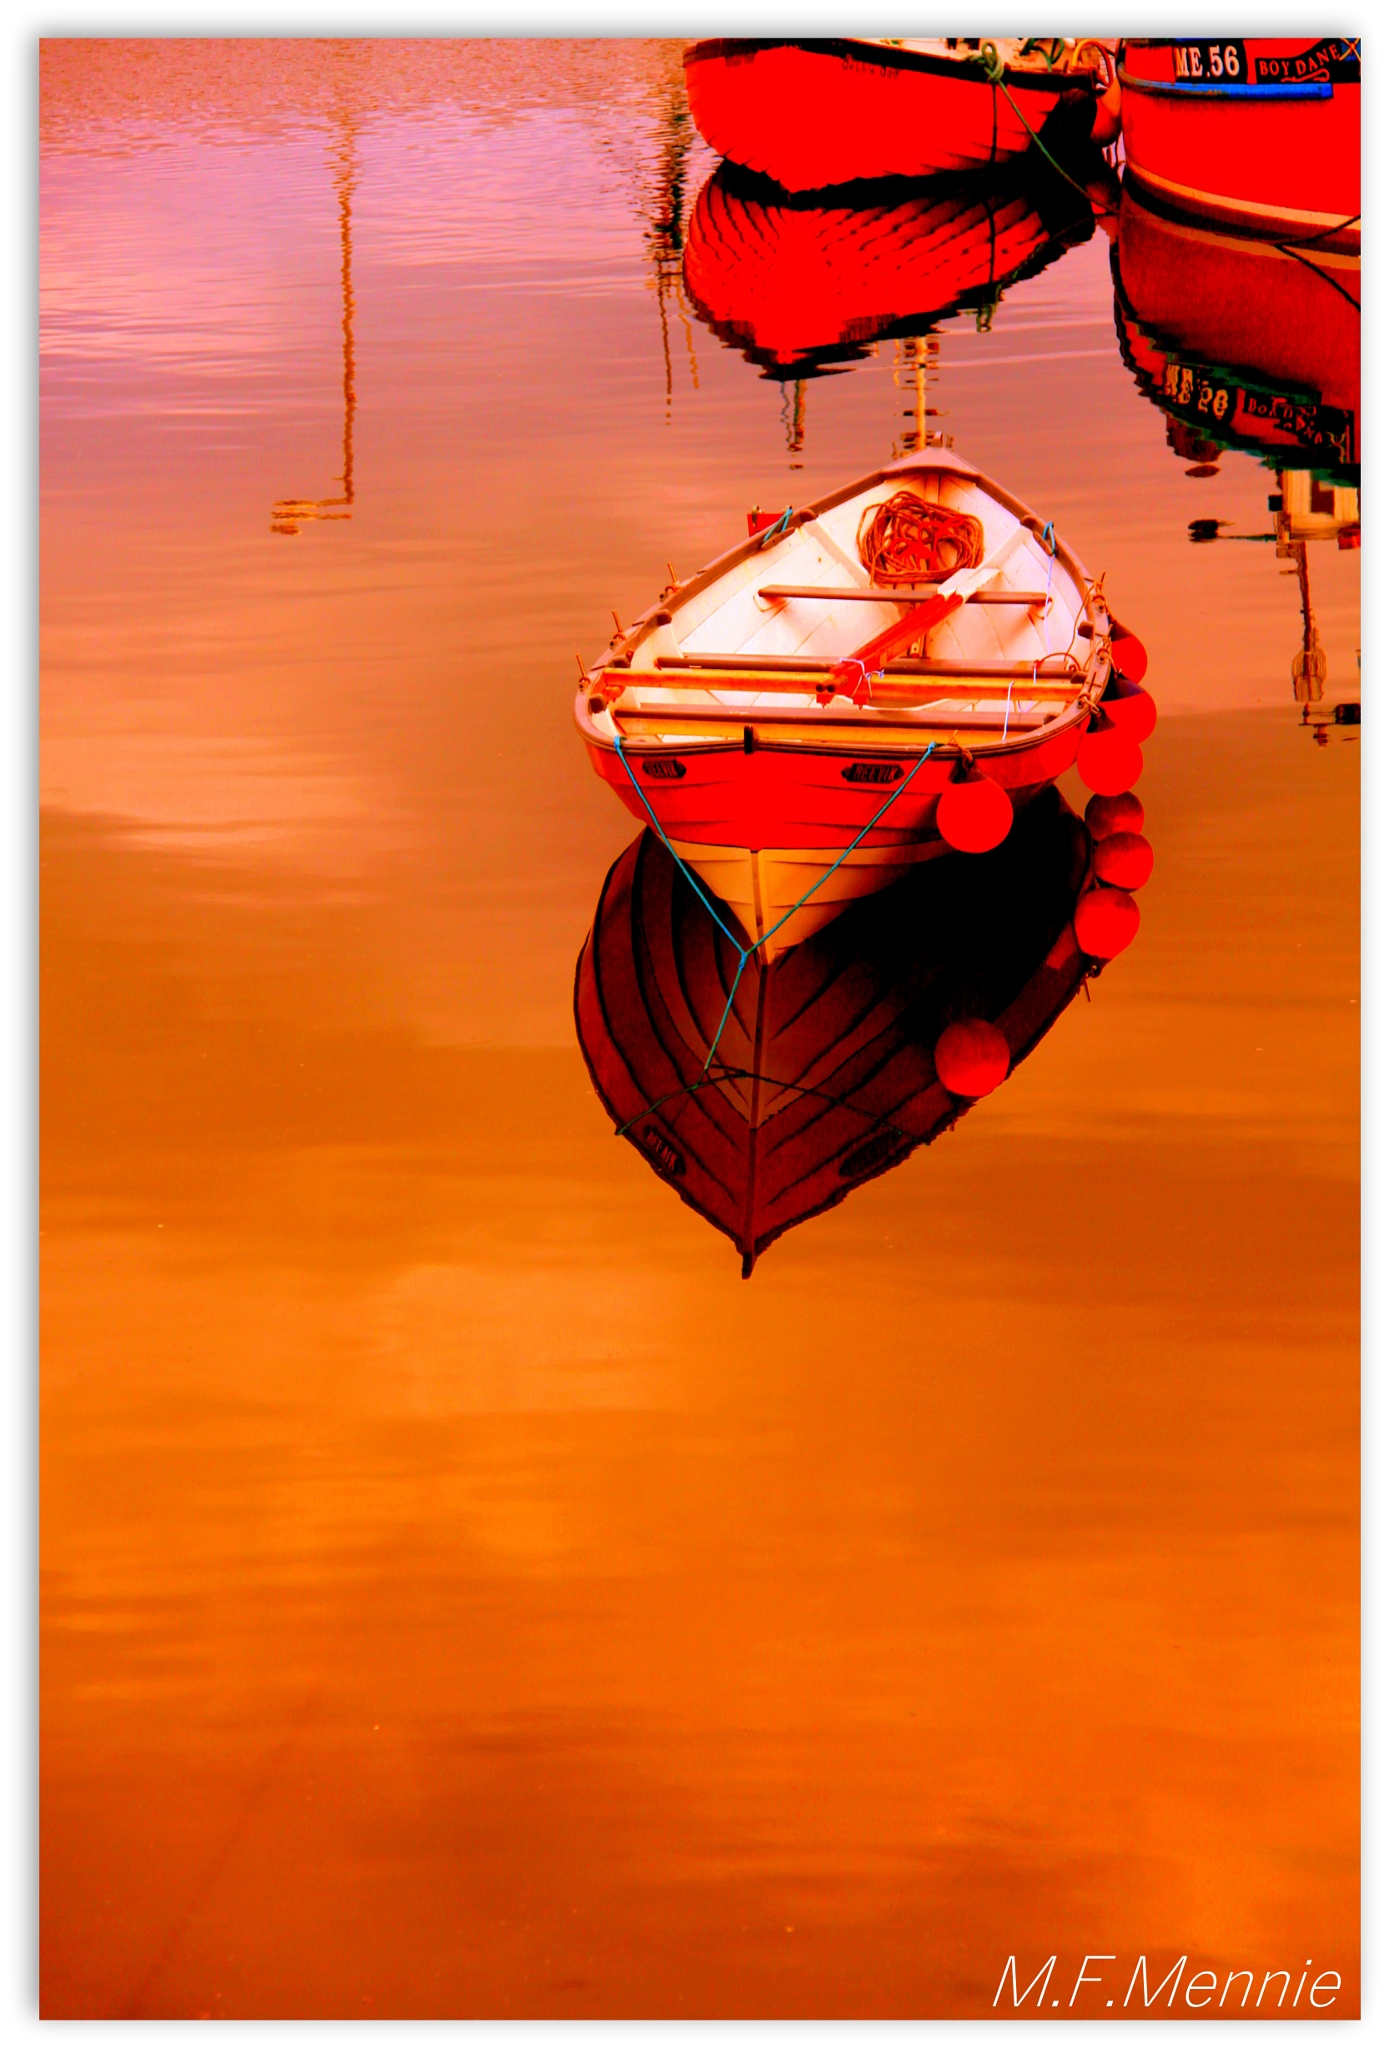 Reflections by Marf